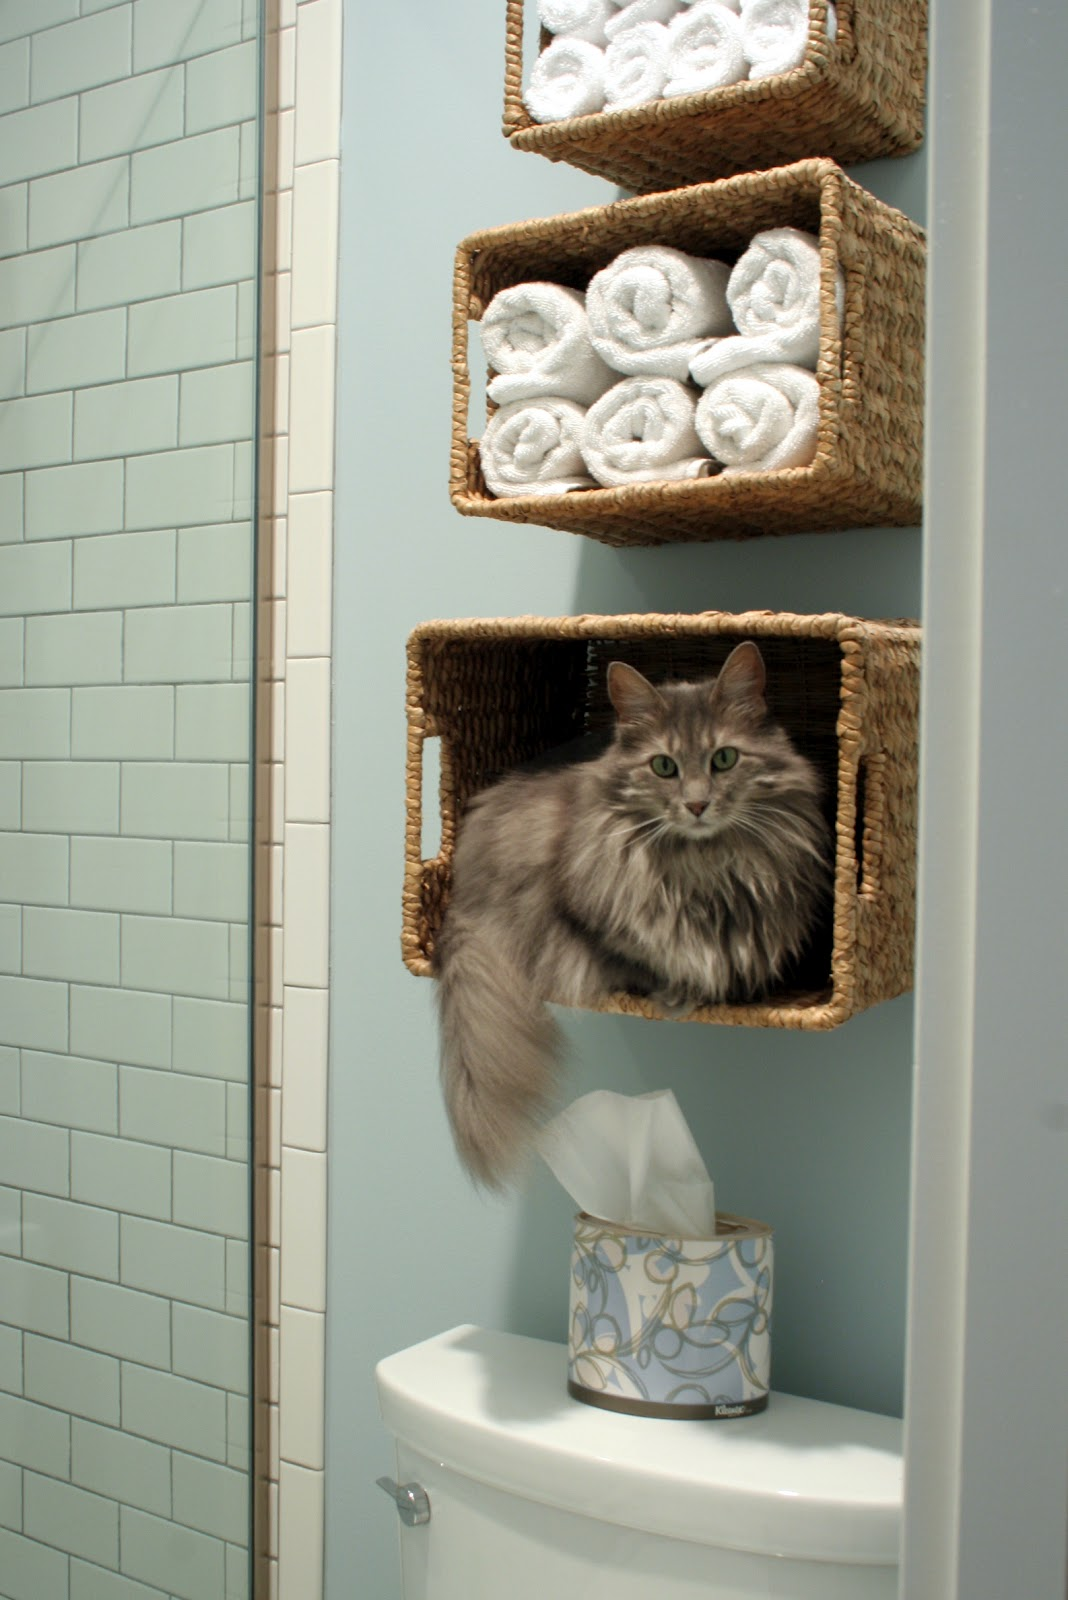 Stuck On Hue Wall Baskets For Kitty Storage